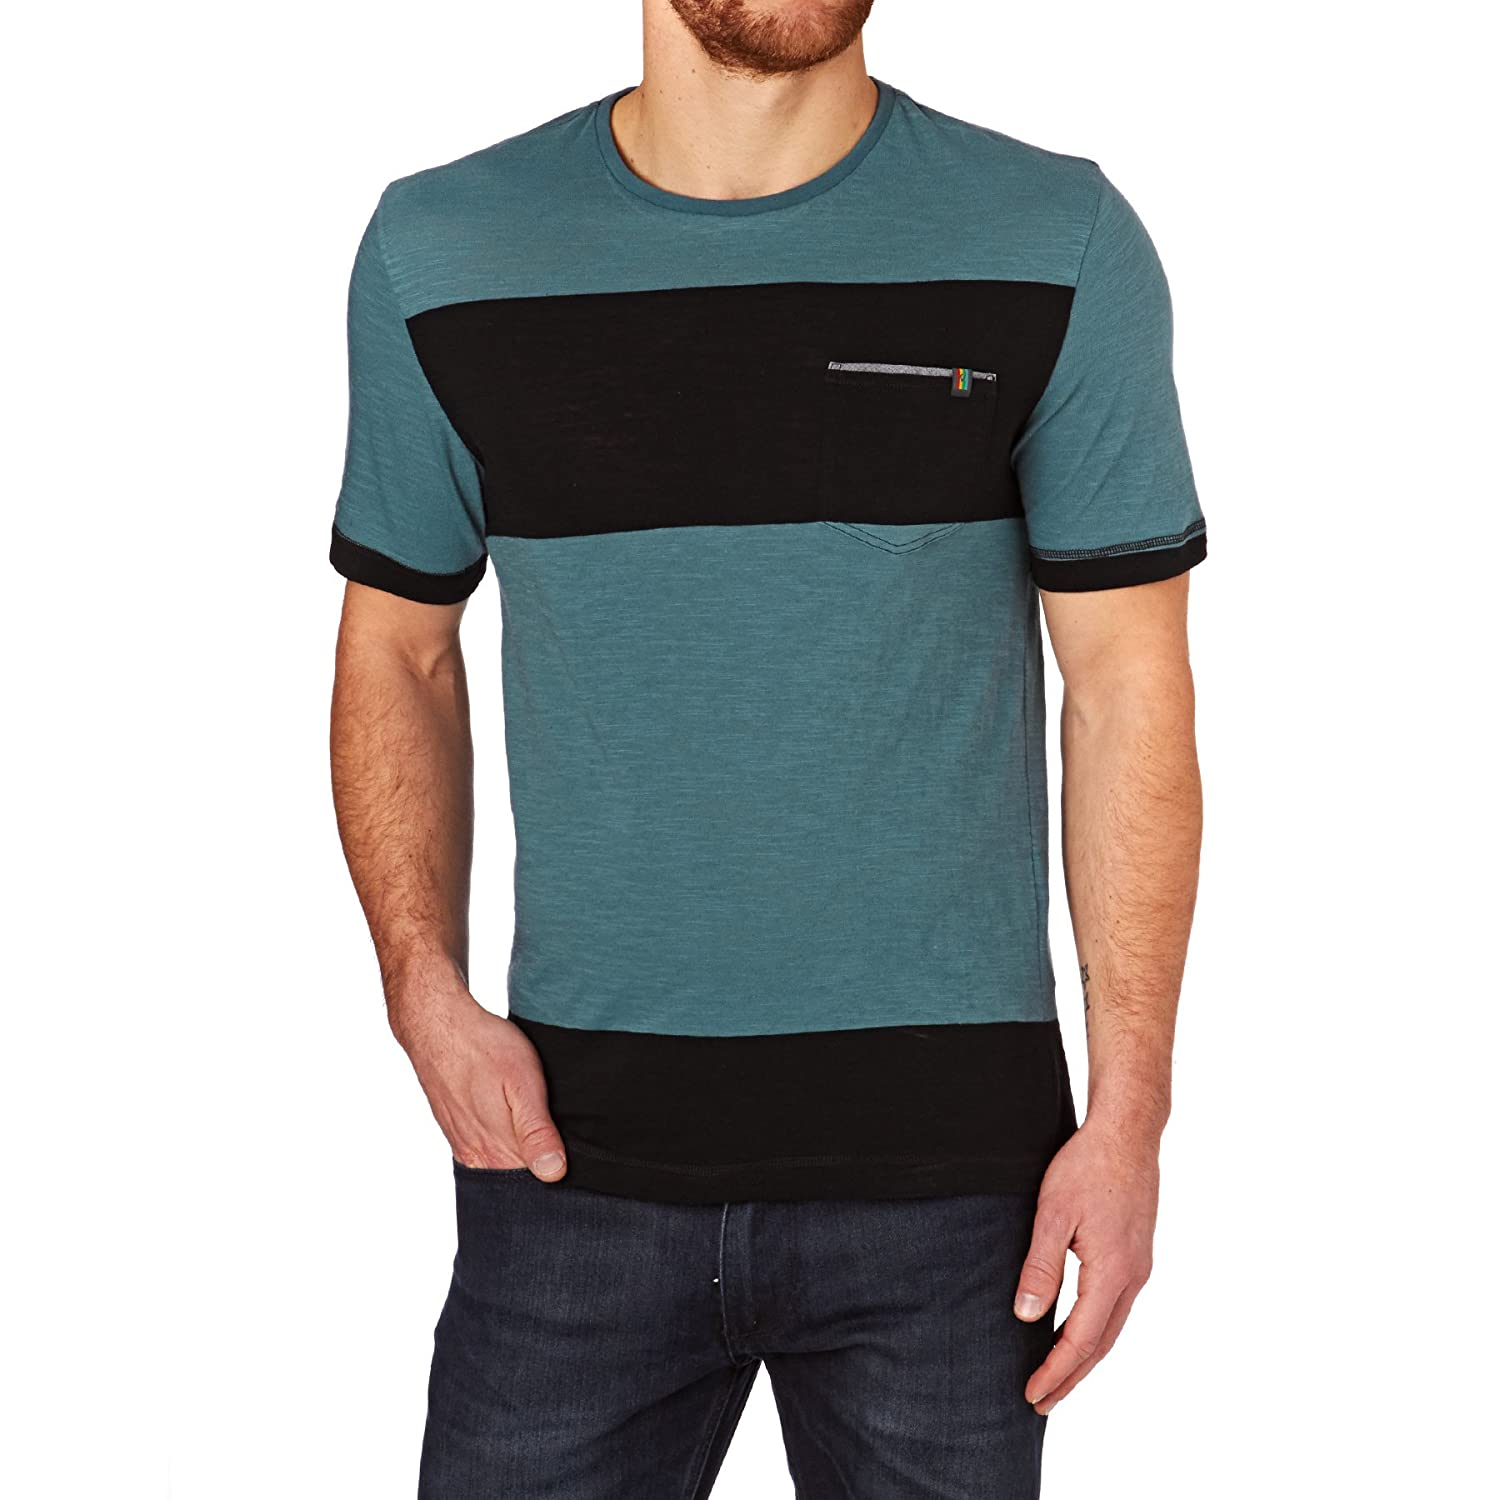 Rip Curl Beetle SS Tee Men's T-Shirt multi-coloured